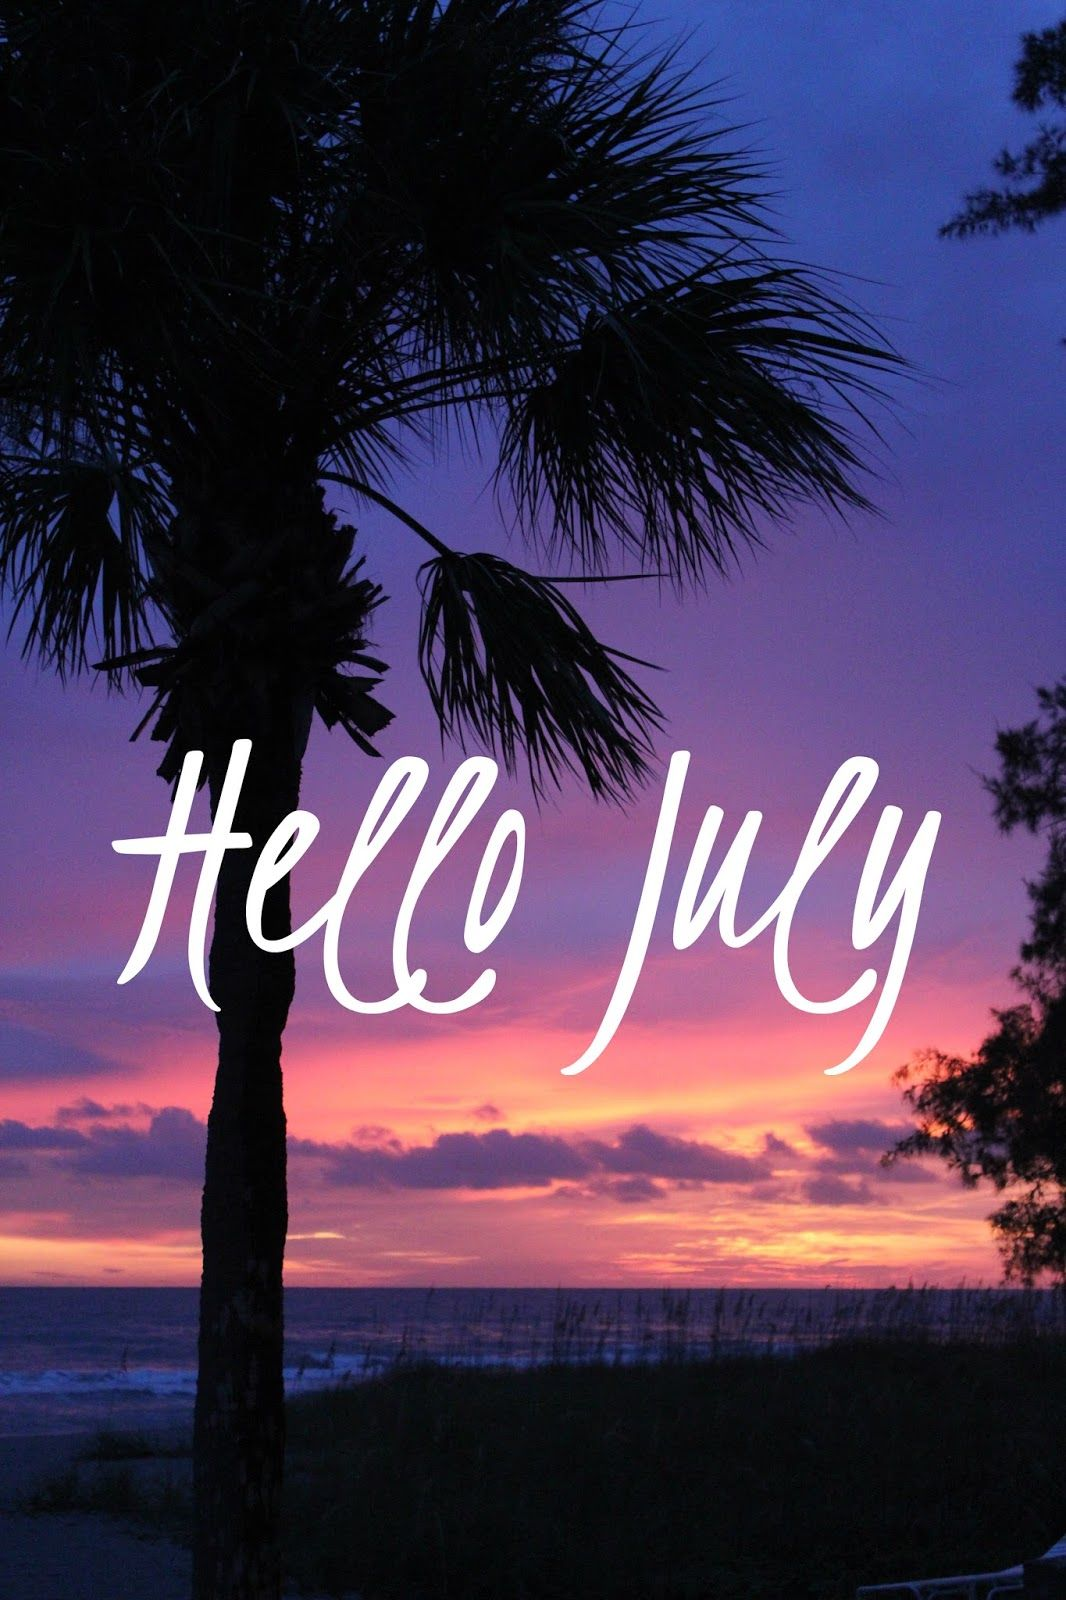 hello july pictures photos and images for facebook